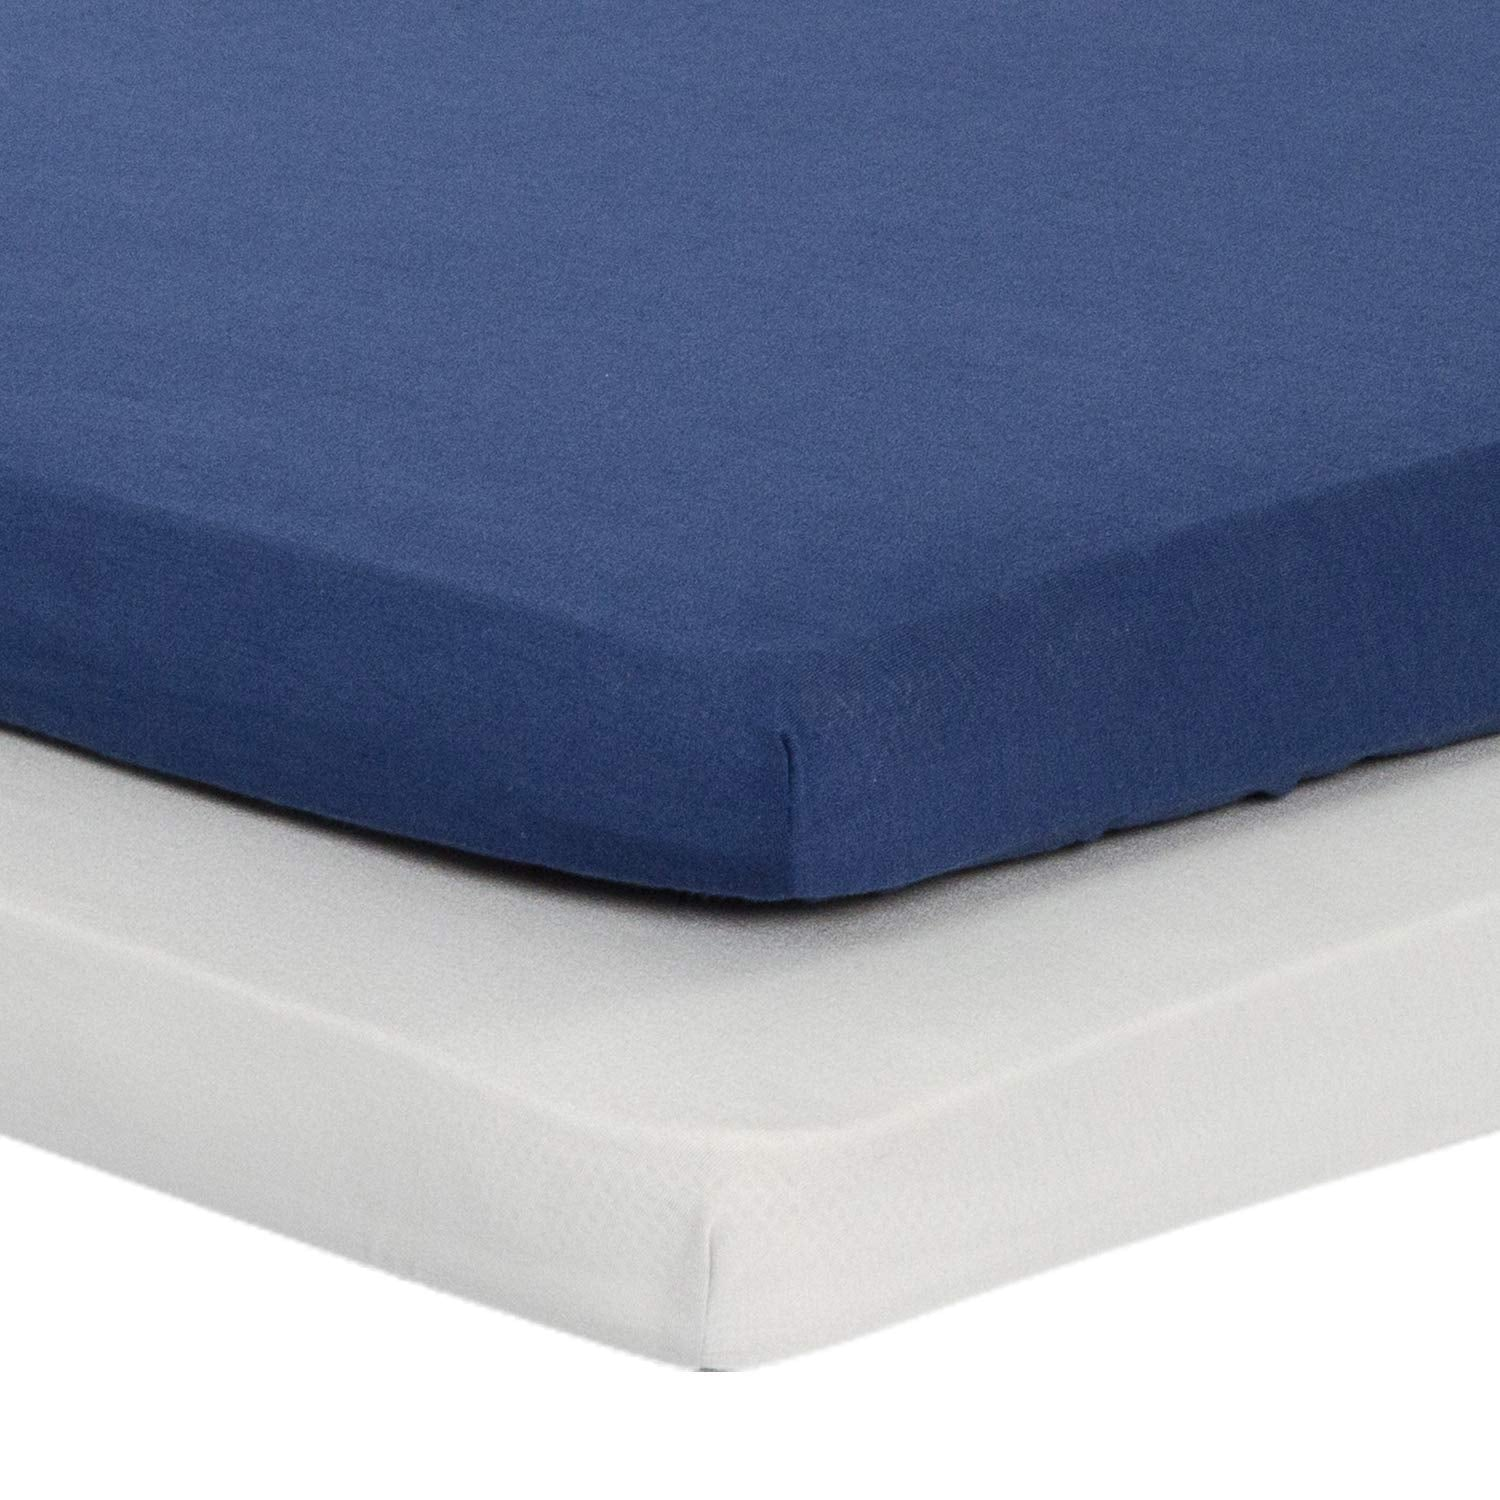 2 Piece - Jersey Knit Pack N Play Sheets Fitted Navy Blue & Lt Gray